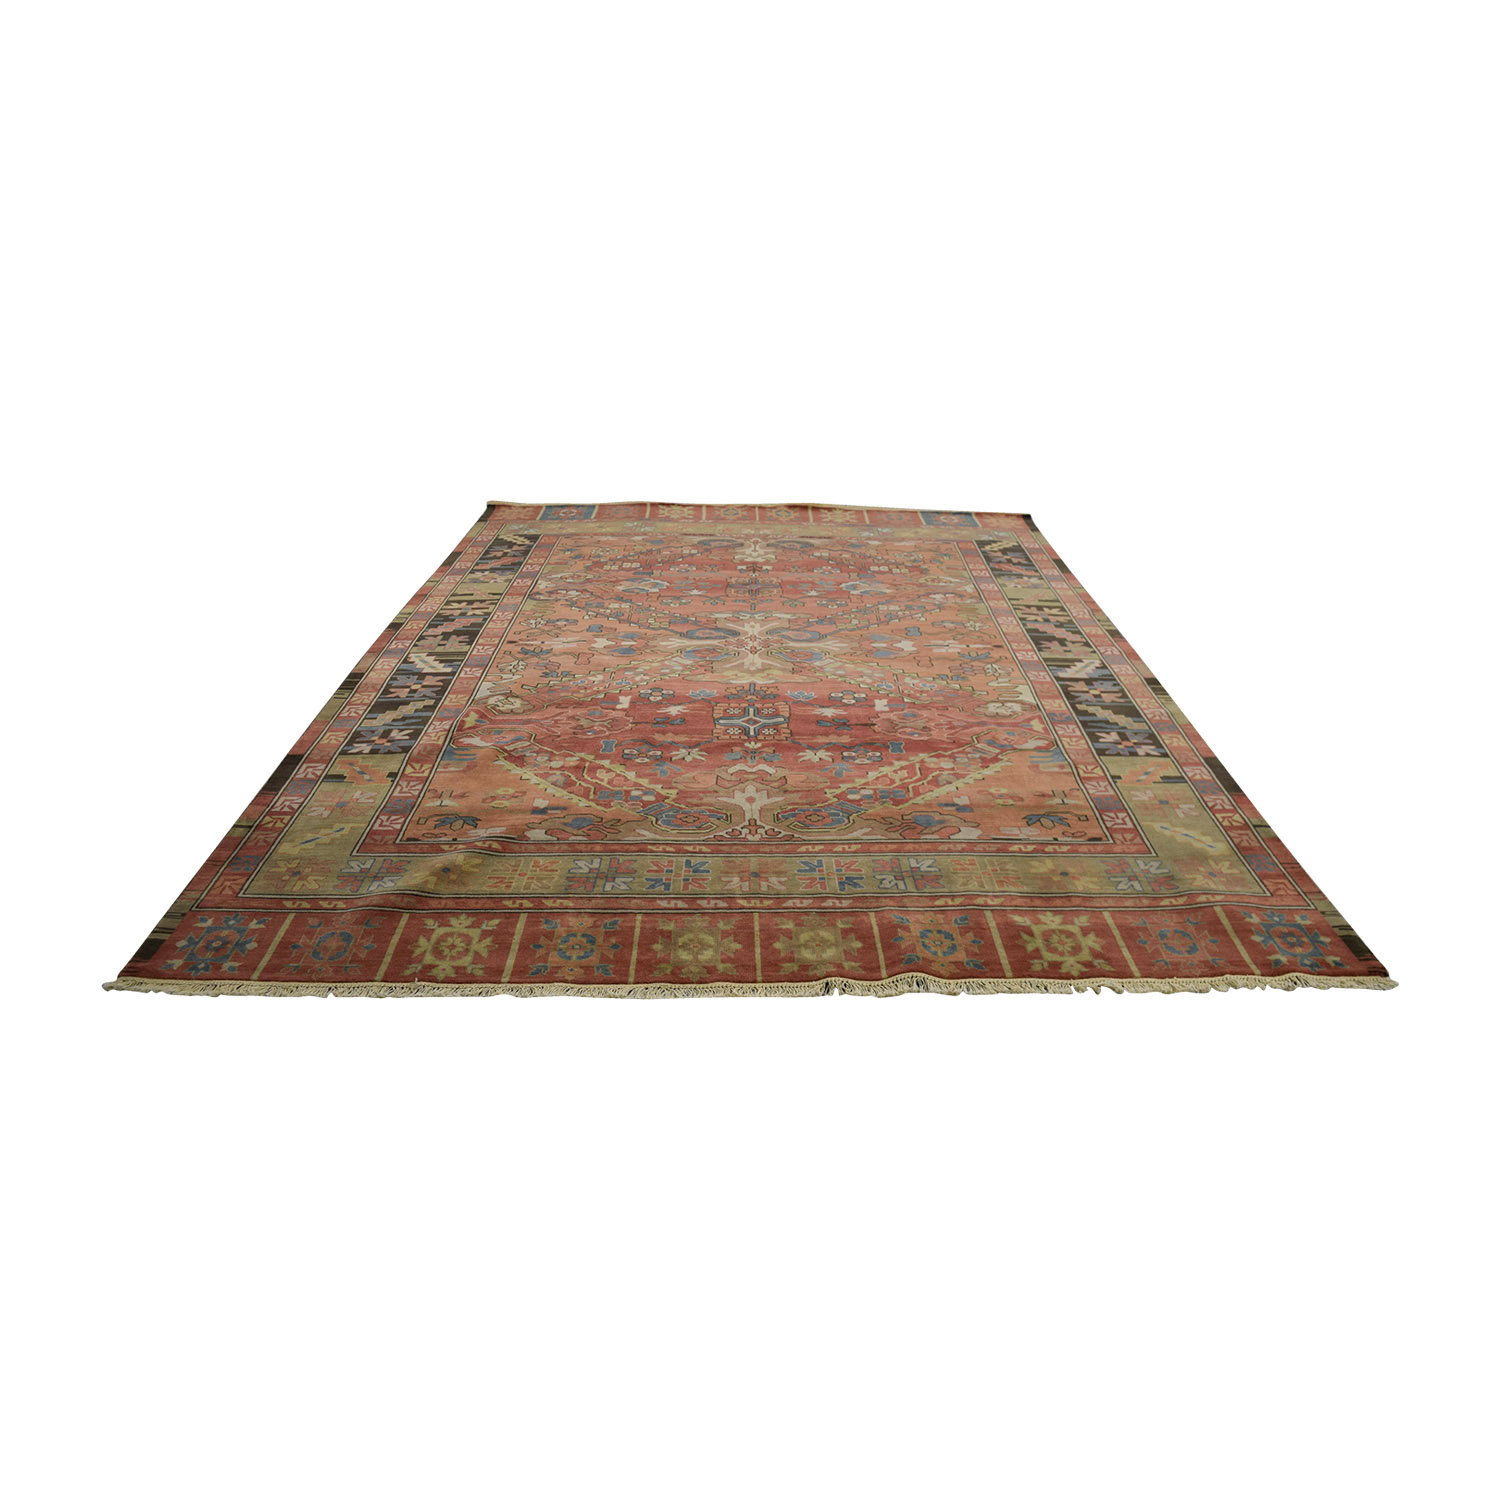 Obeetee Obeetee Kayseri Red Blue and Yellow Wool Rug dimensions